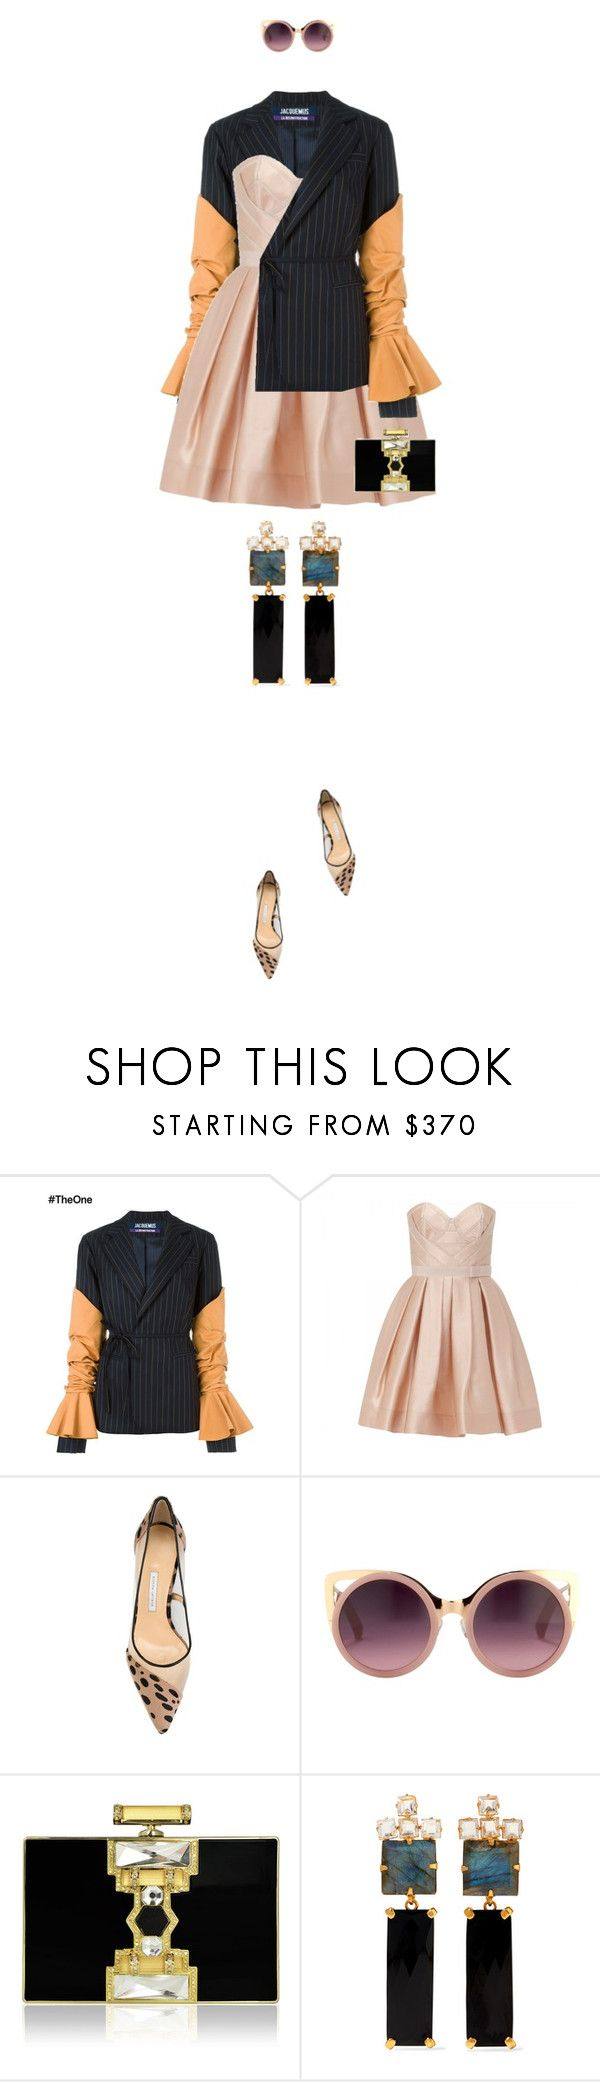 """eva 0652"" by evava-c on Polyvore featuring Jacquemus, Paule Ka, Bionda Castana, Erdem, Judith Leiber and Bounkit"